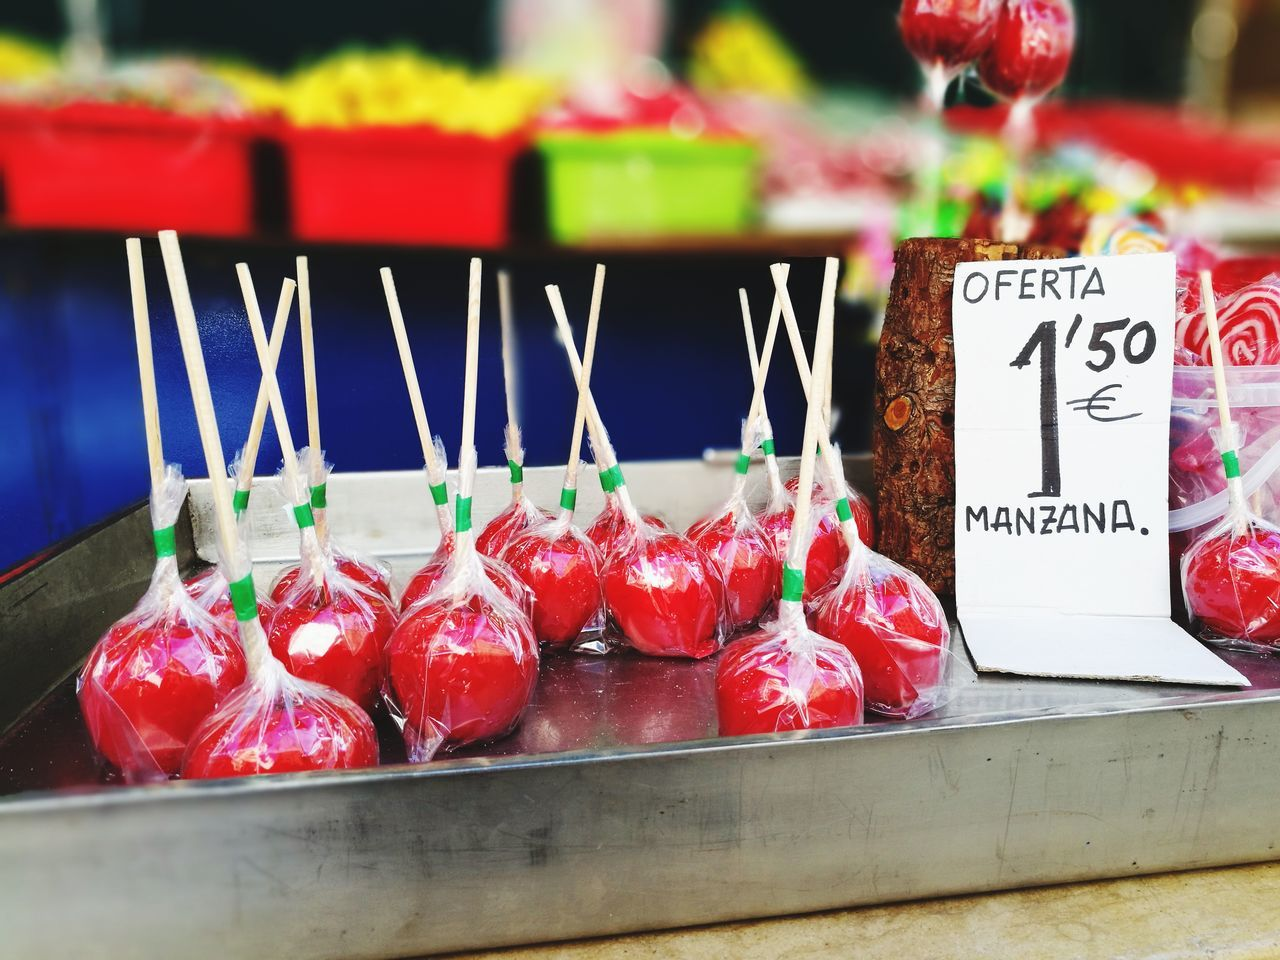 Apple Sugar Red Focus On Foreground Sweet Food Candle Freshness No People Denia Spain ✈️🇪🇸 Fruit Indoors  Market Day